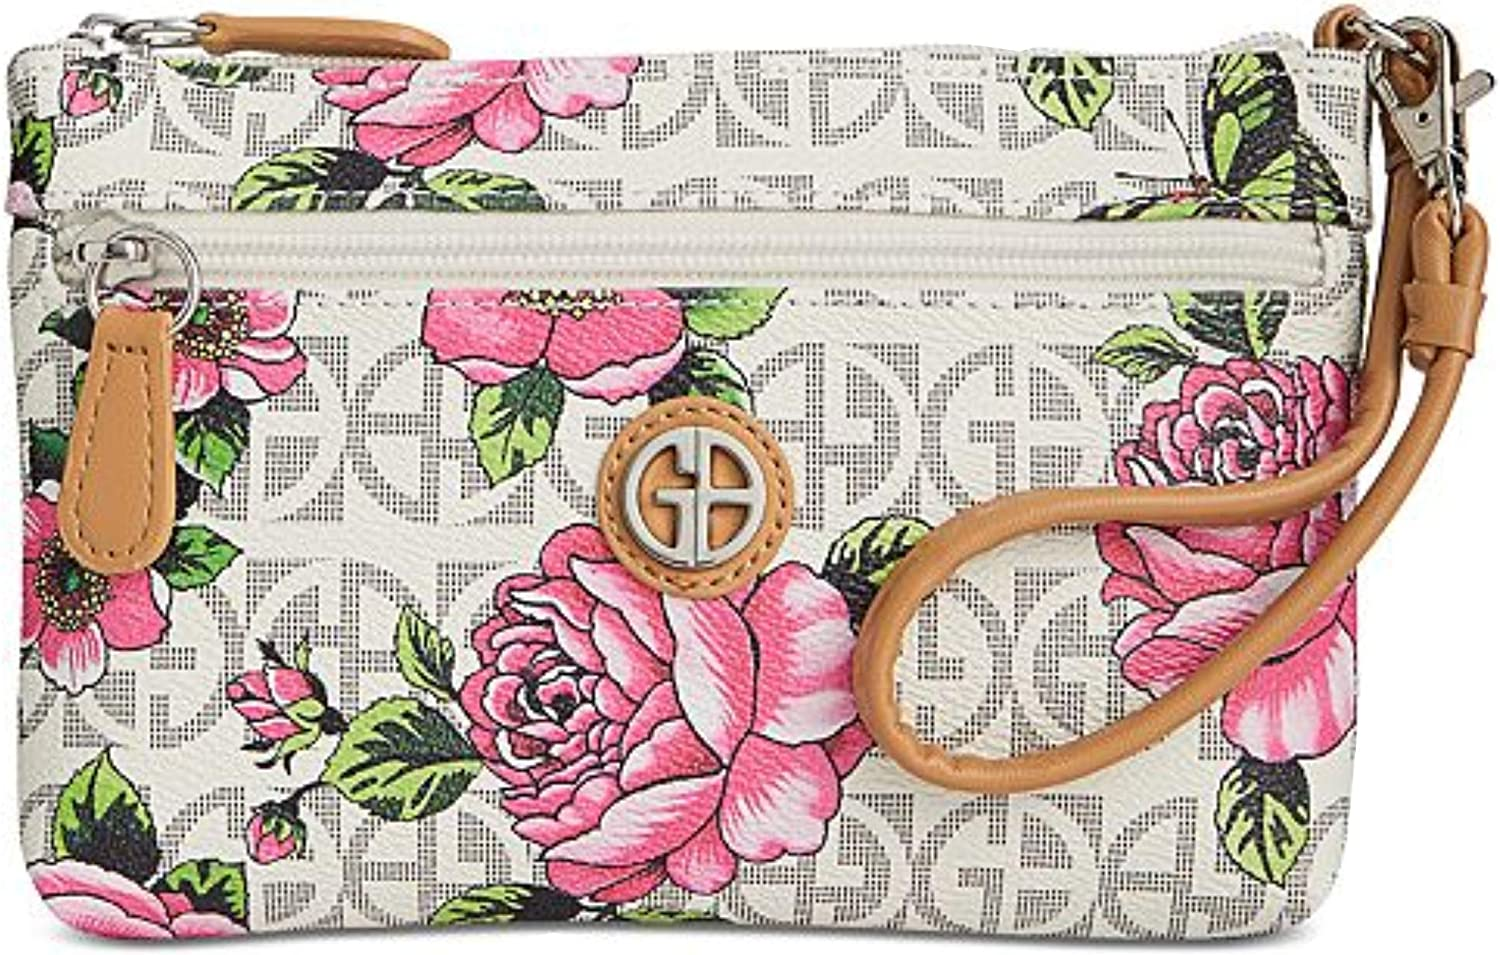 Giani Bernini Block Signature Floral Wristlet, Small